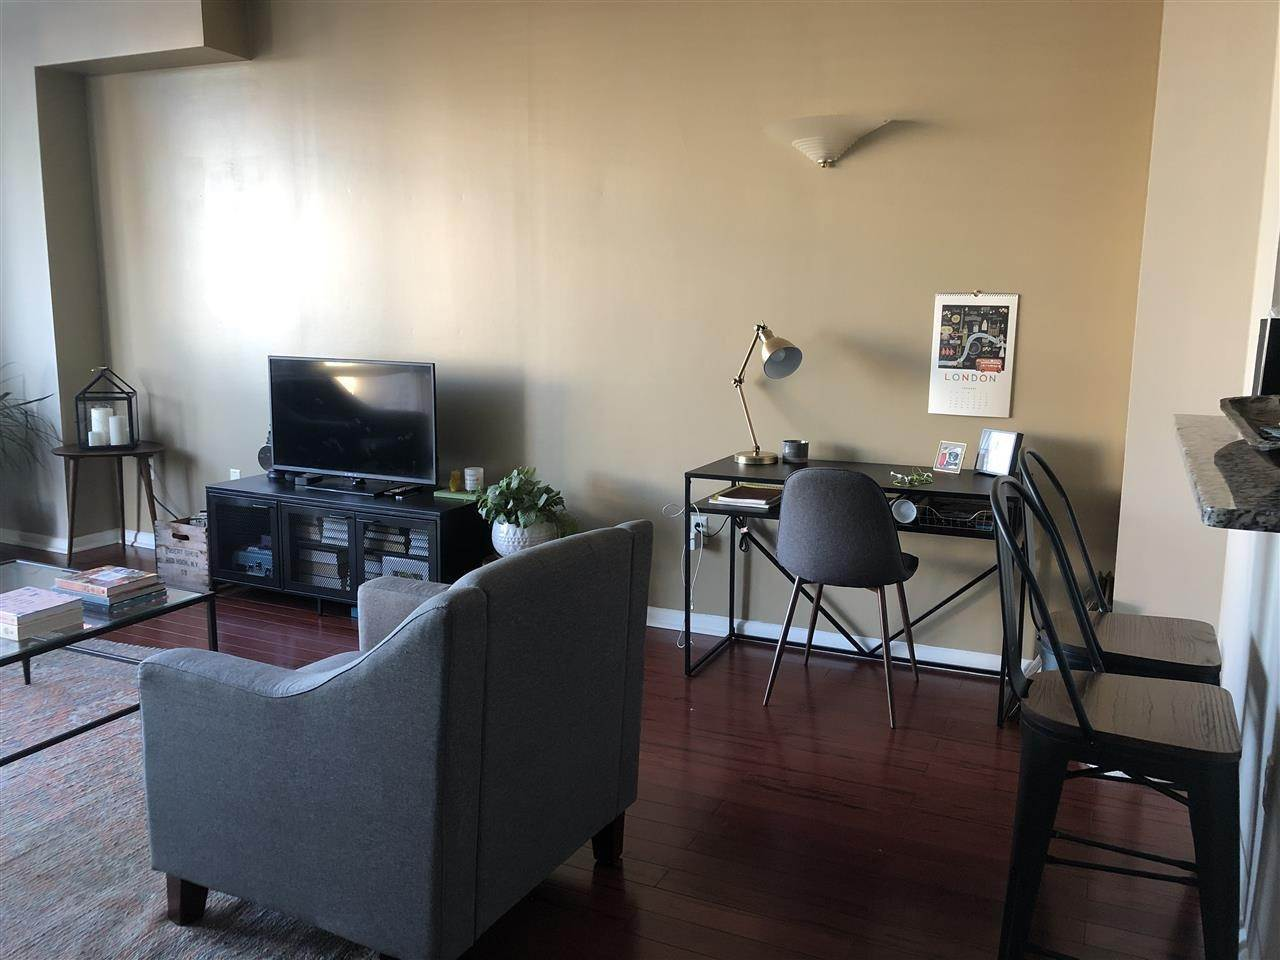 8. Single Family Home for Rent at 20 2ND STREET #PH05 Jersey City, New Jersey, 07302 United States